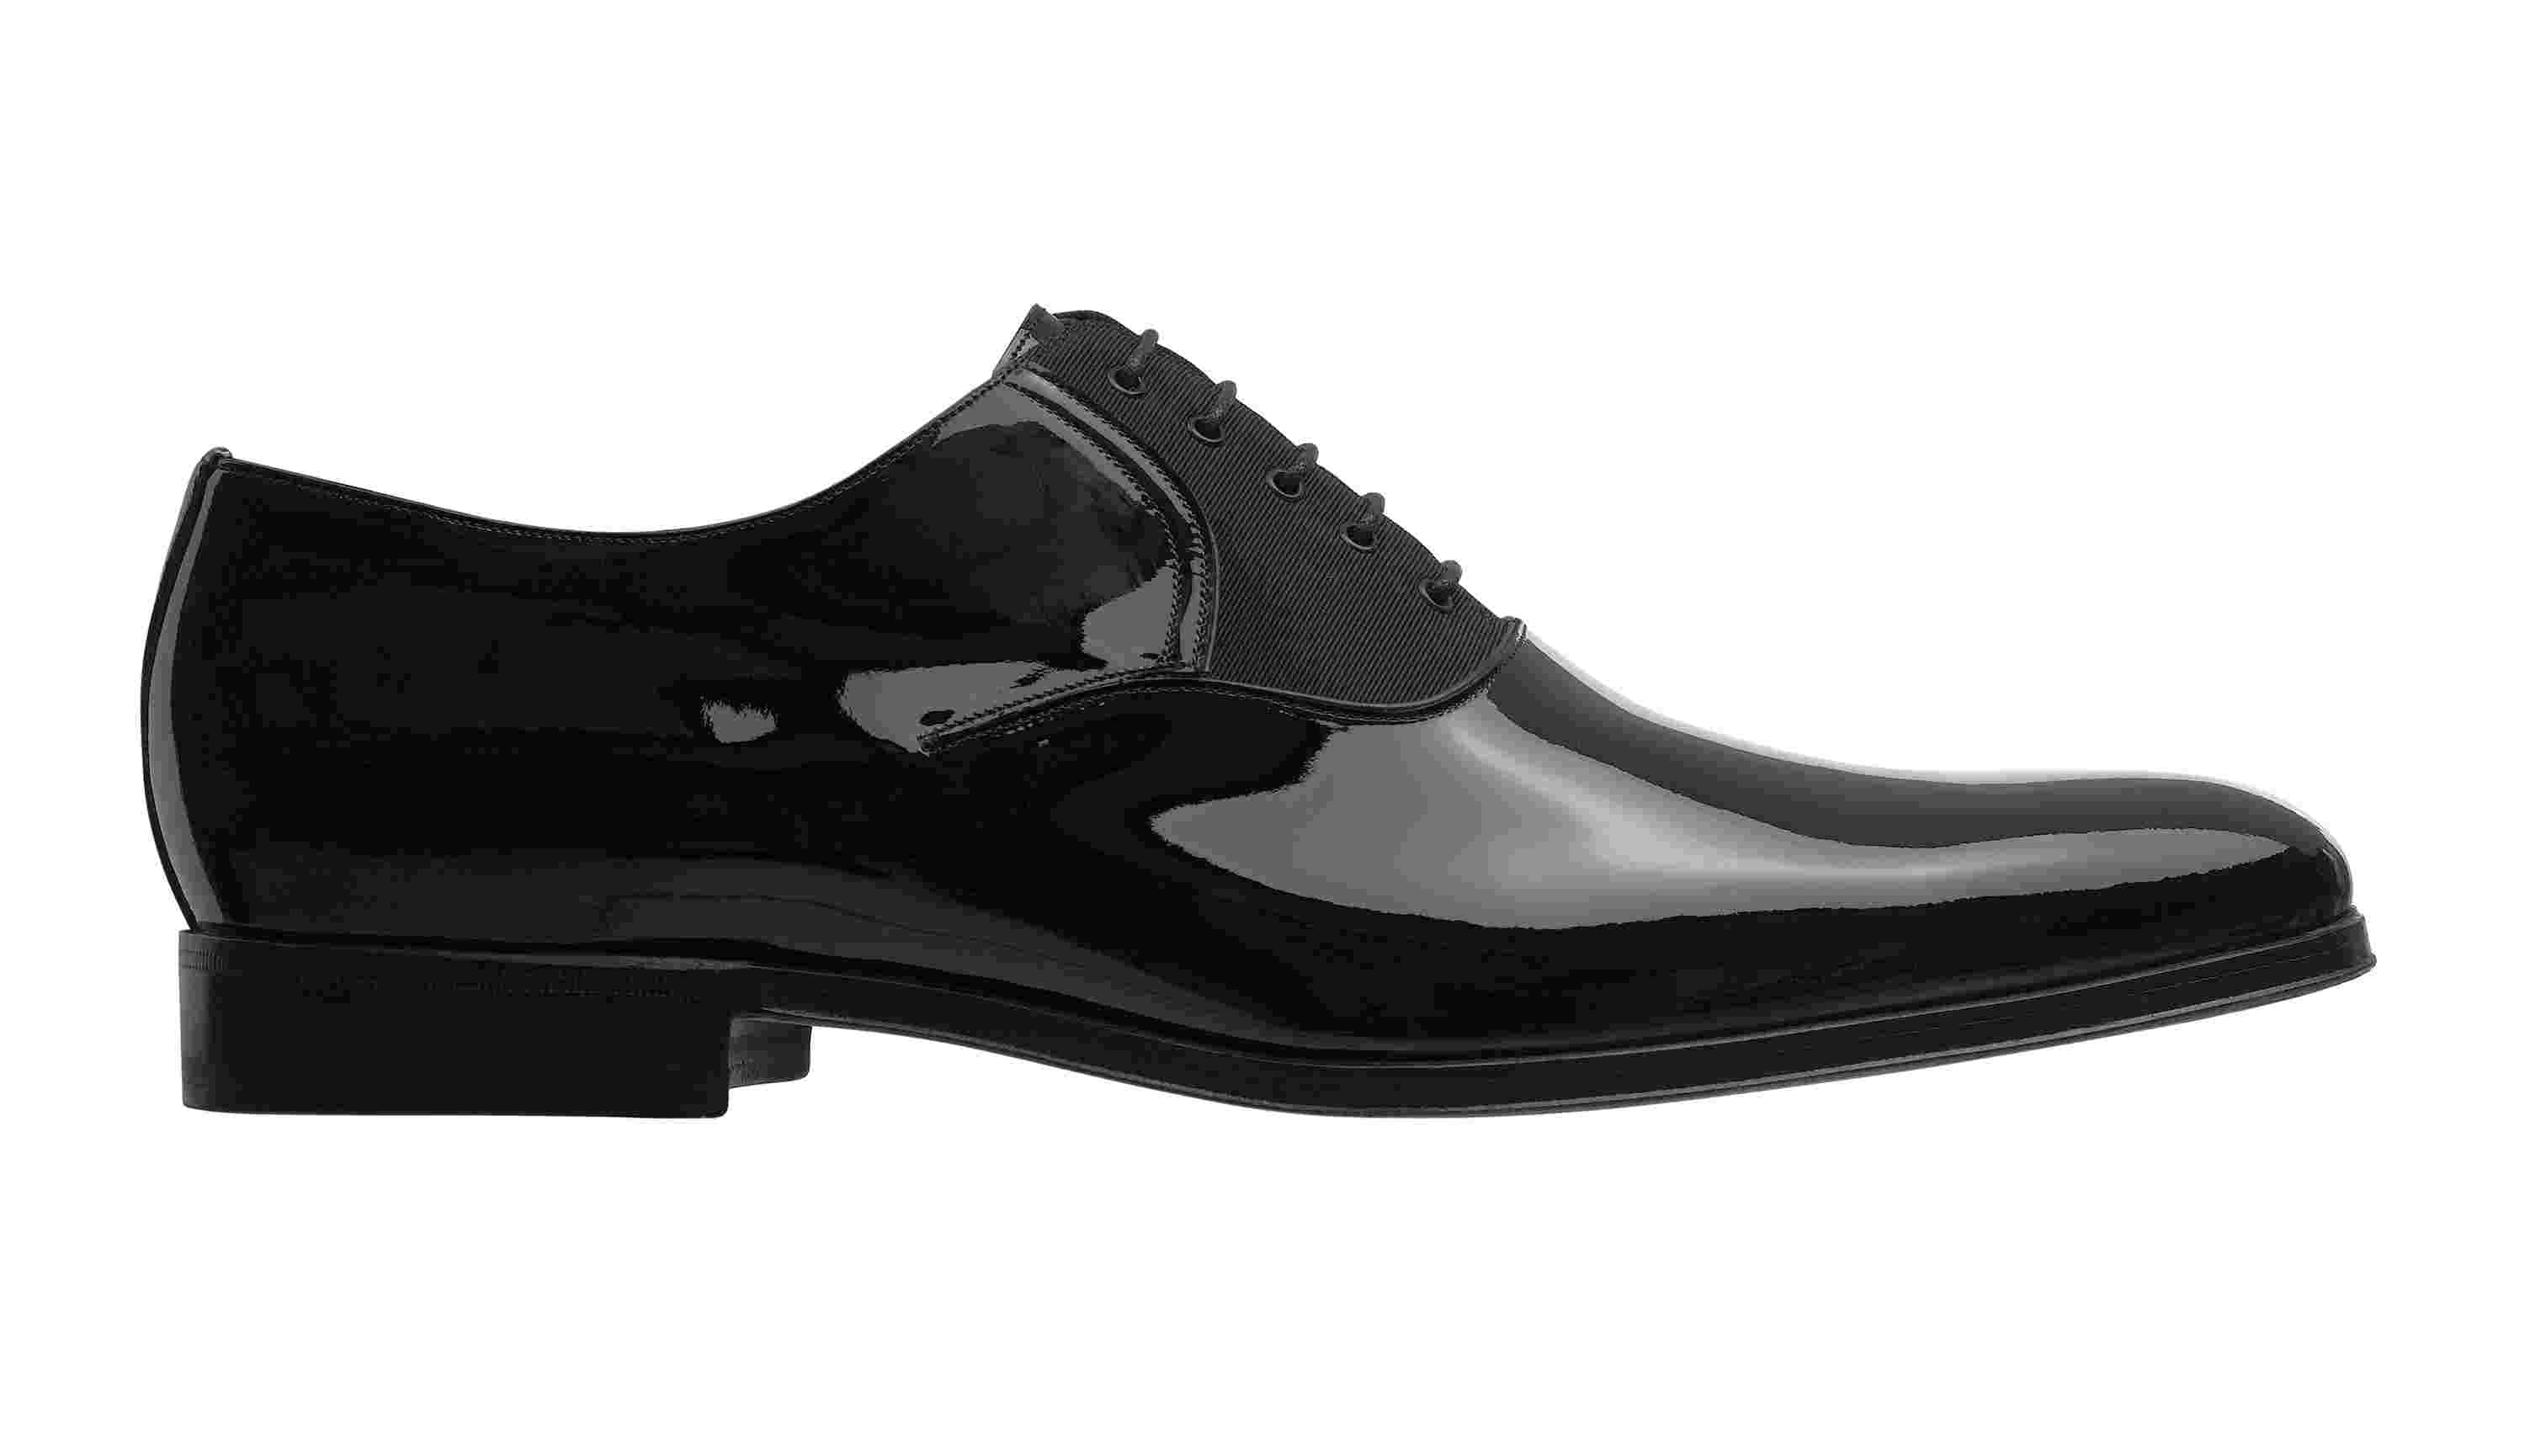 Oxfordshoe in Black Patent Calfskin and Ottoman Canvas